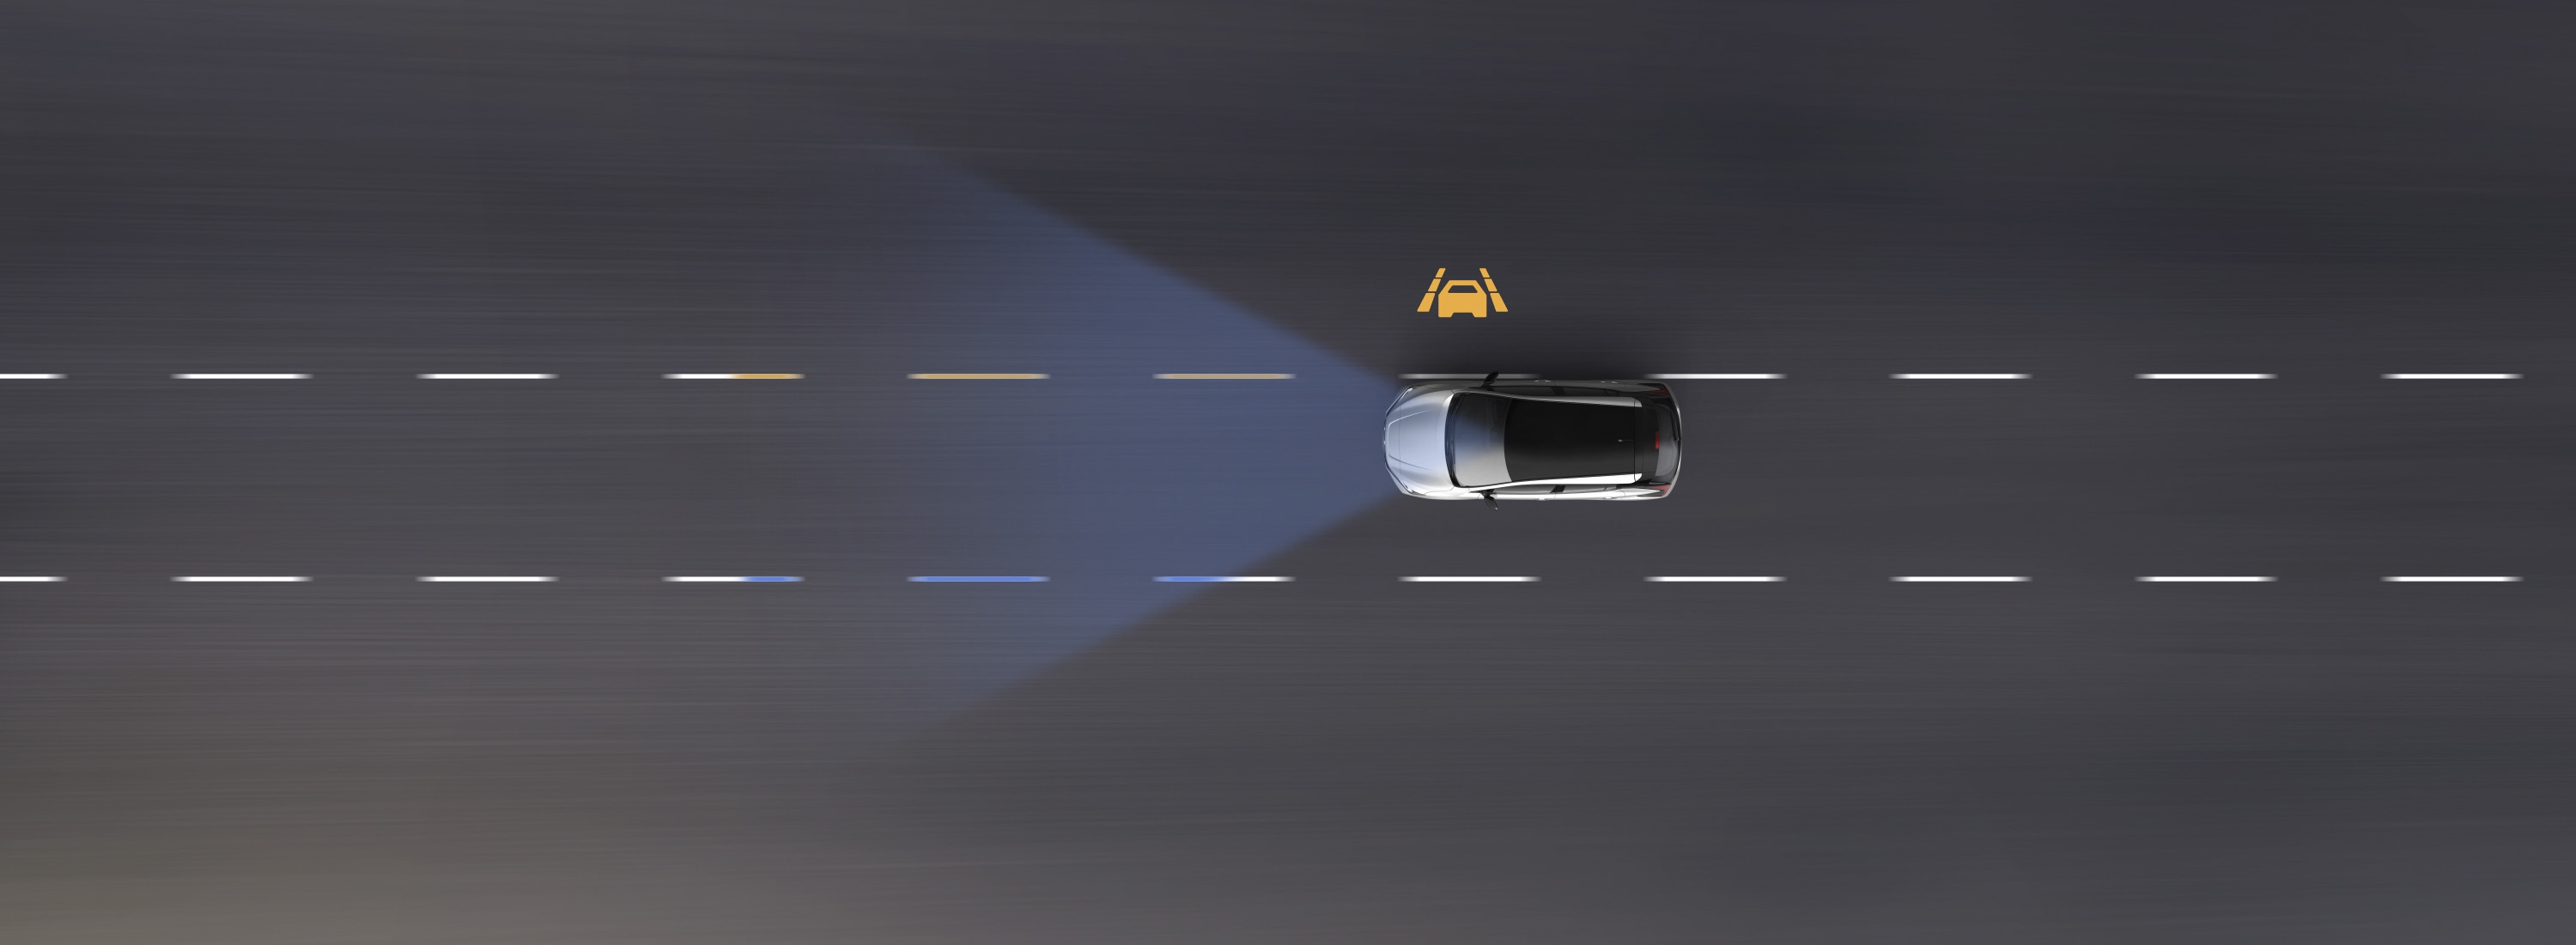 Nissan LEAF Intelligent Lane Intervention animation